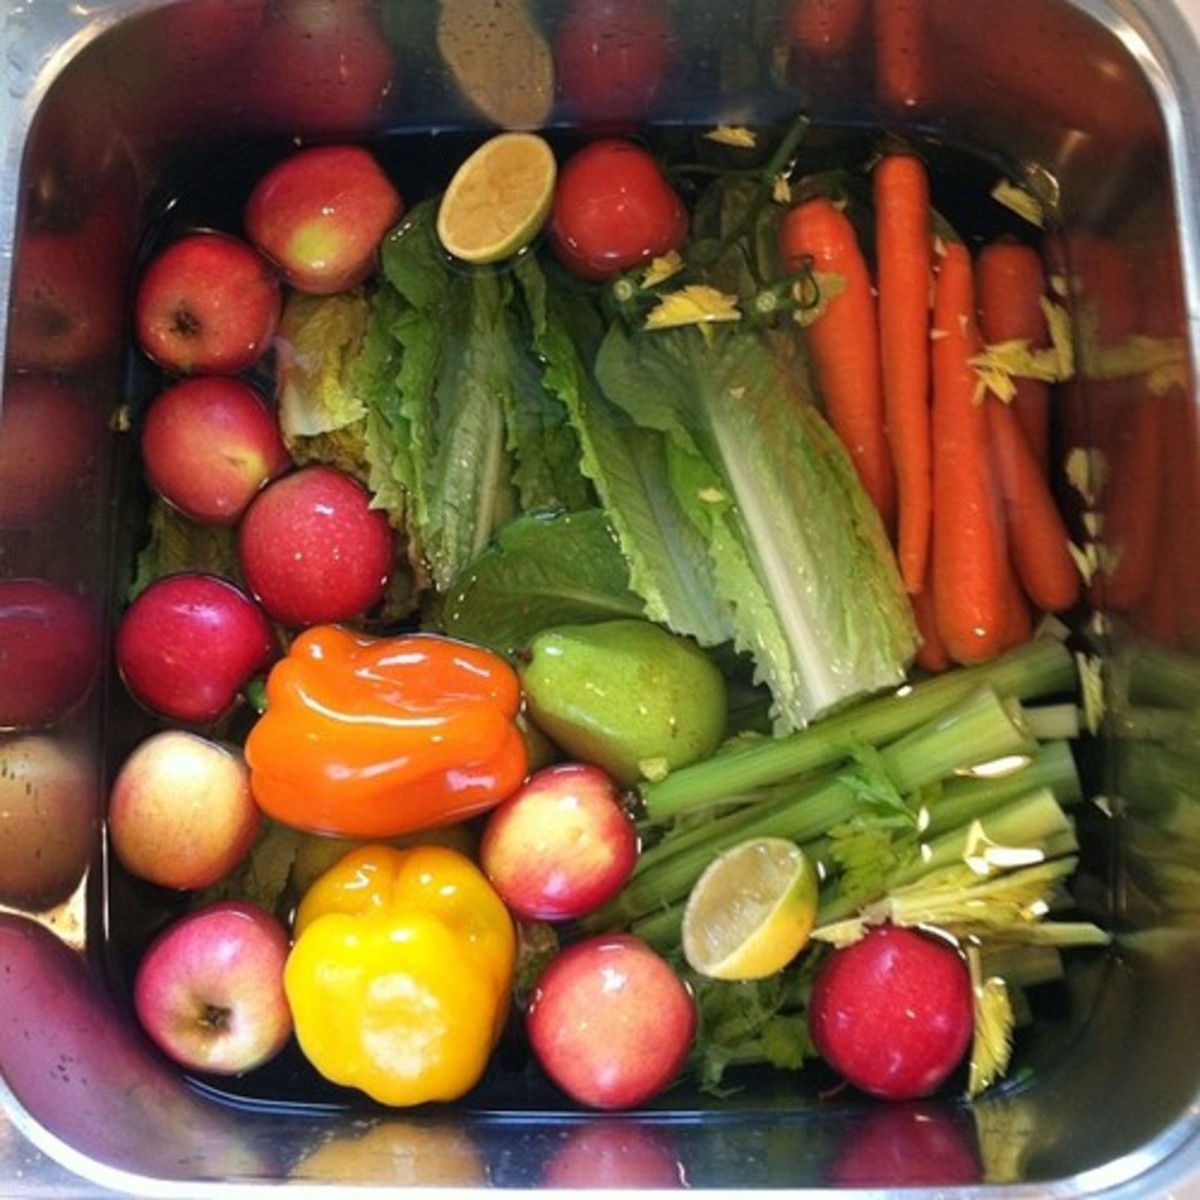 To remove pesticides and waxes soak your produce in a vinegar and water bath